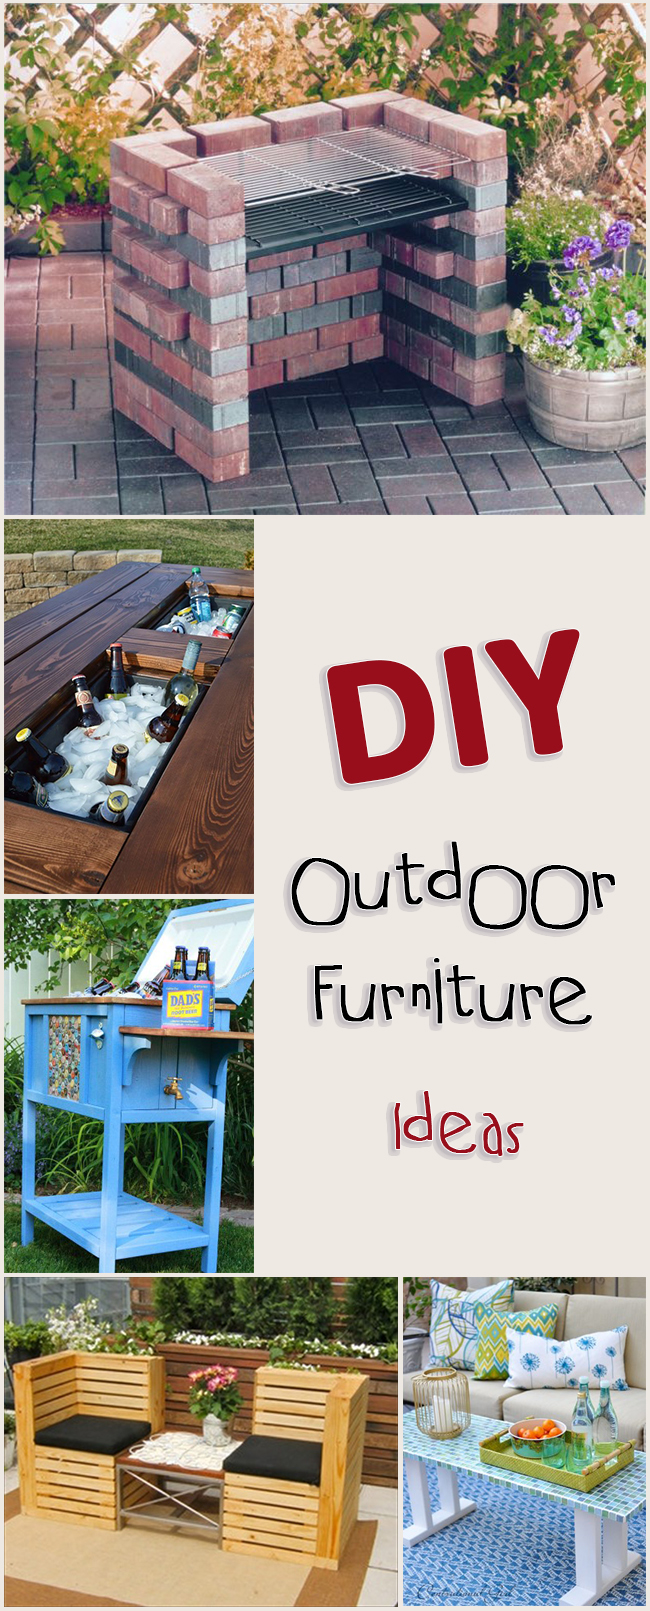 diy outdoor furniture ideas page 6 of 7 sunlit spaces